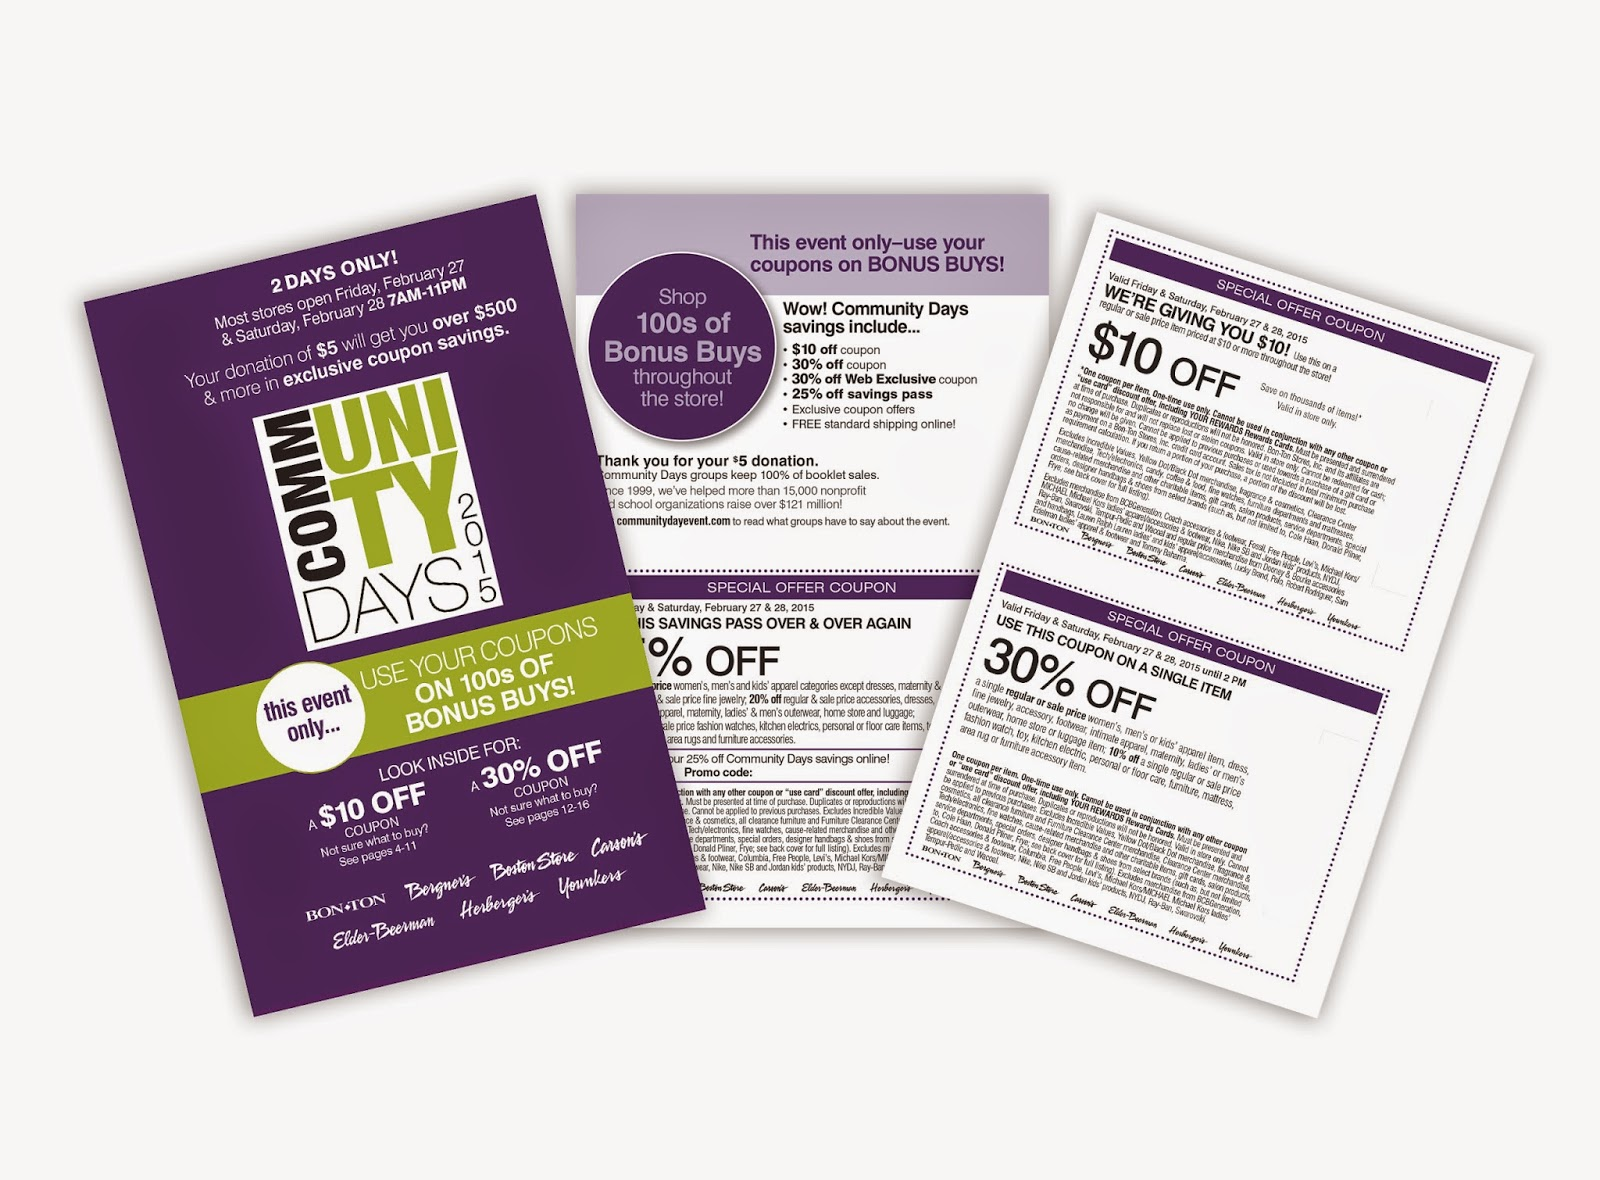 This is a graphic of Sweet Bergners Coupons Printable